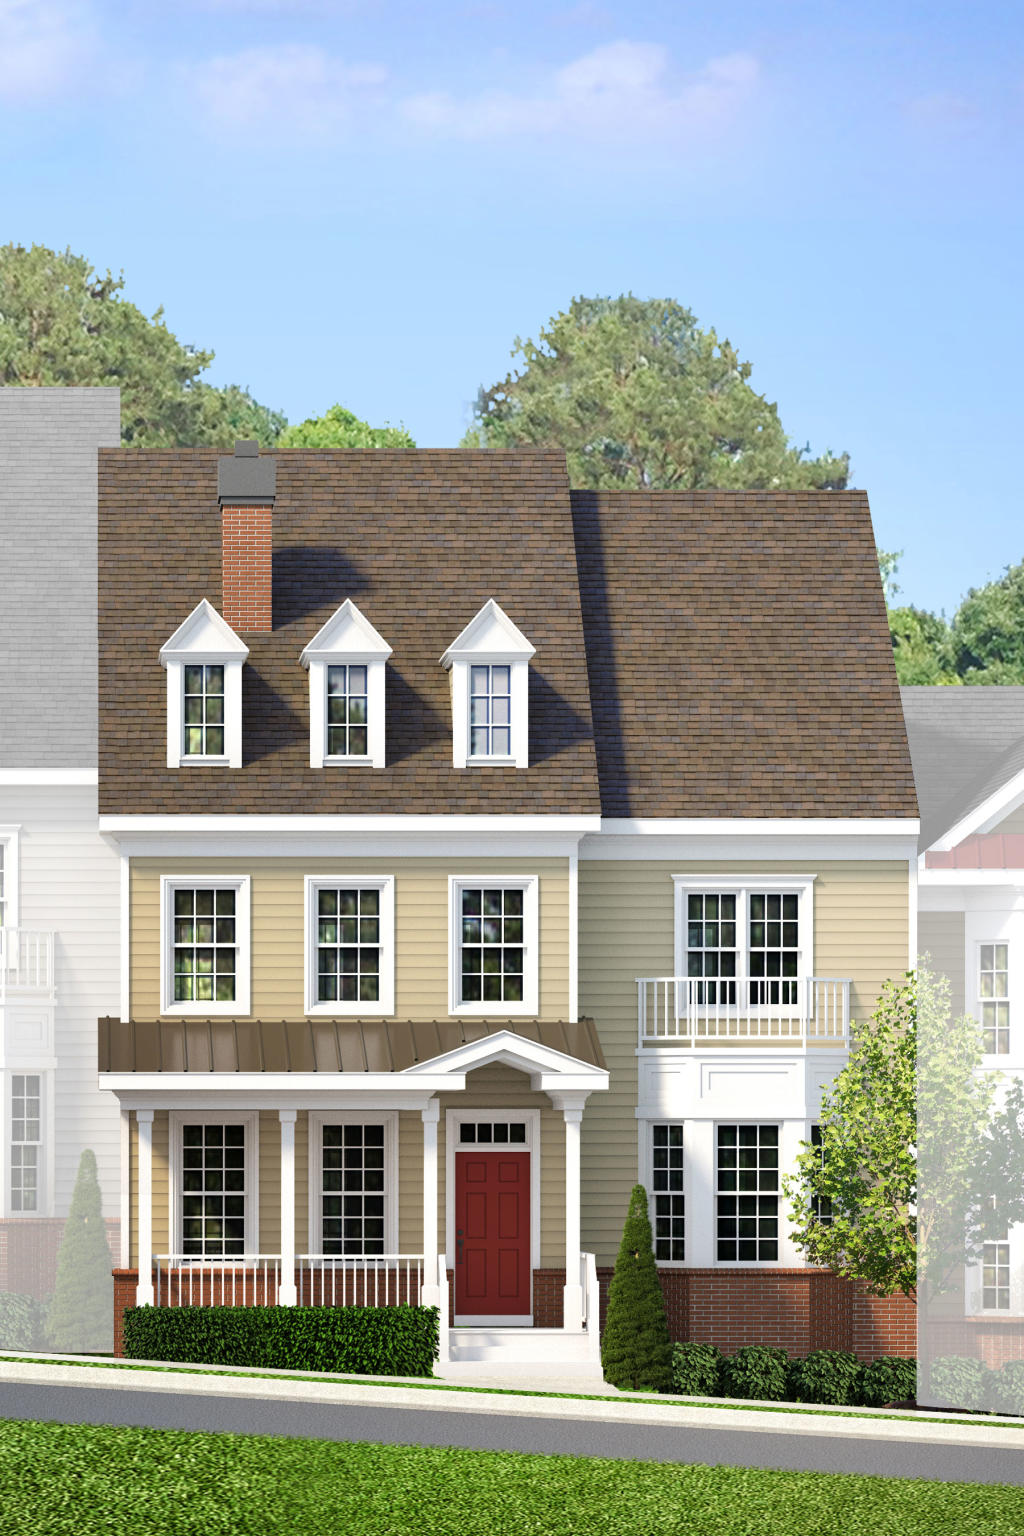 Kendel 1 Plan, Malvern, PA 19355 | Trulia